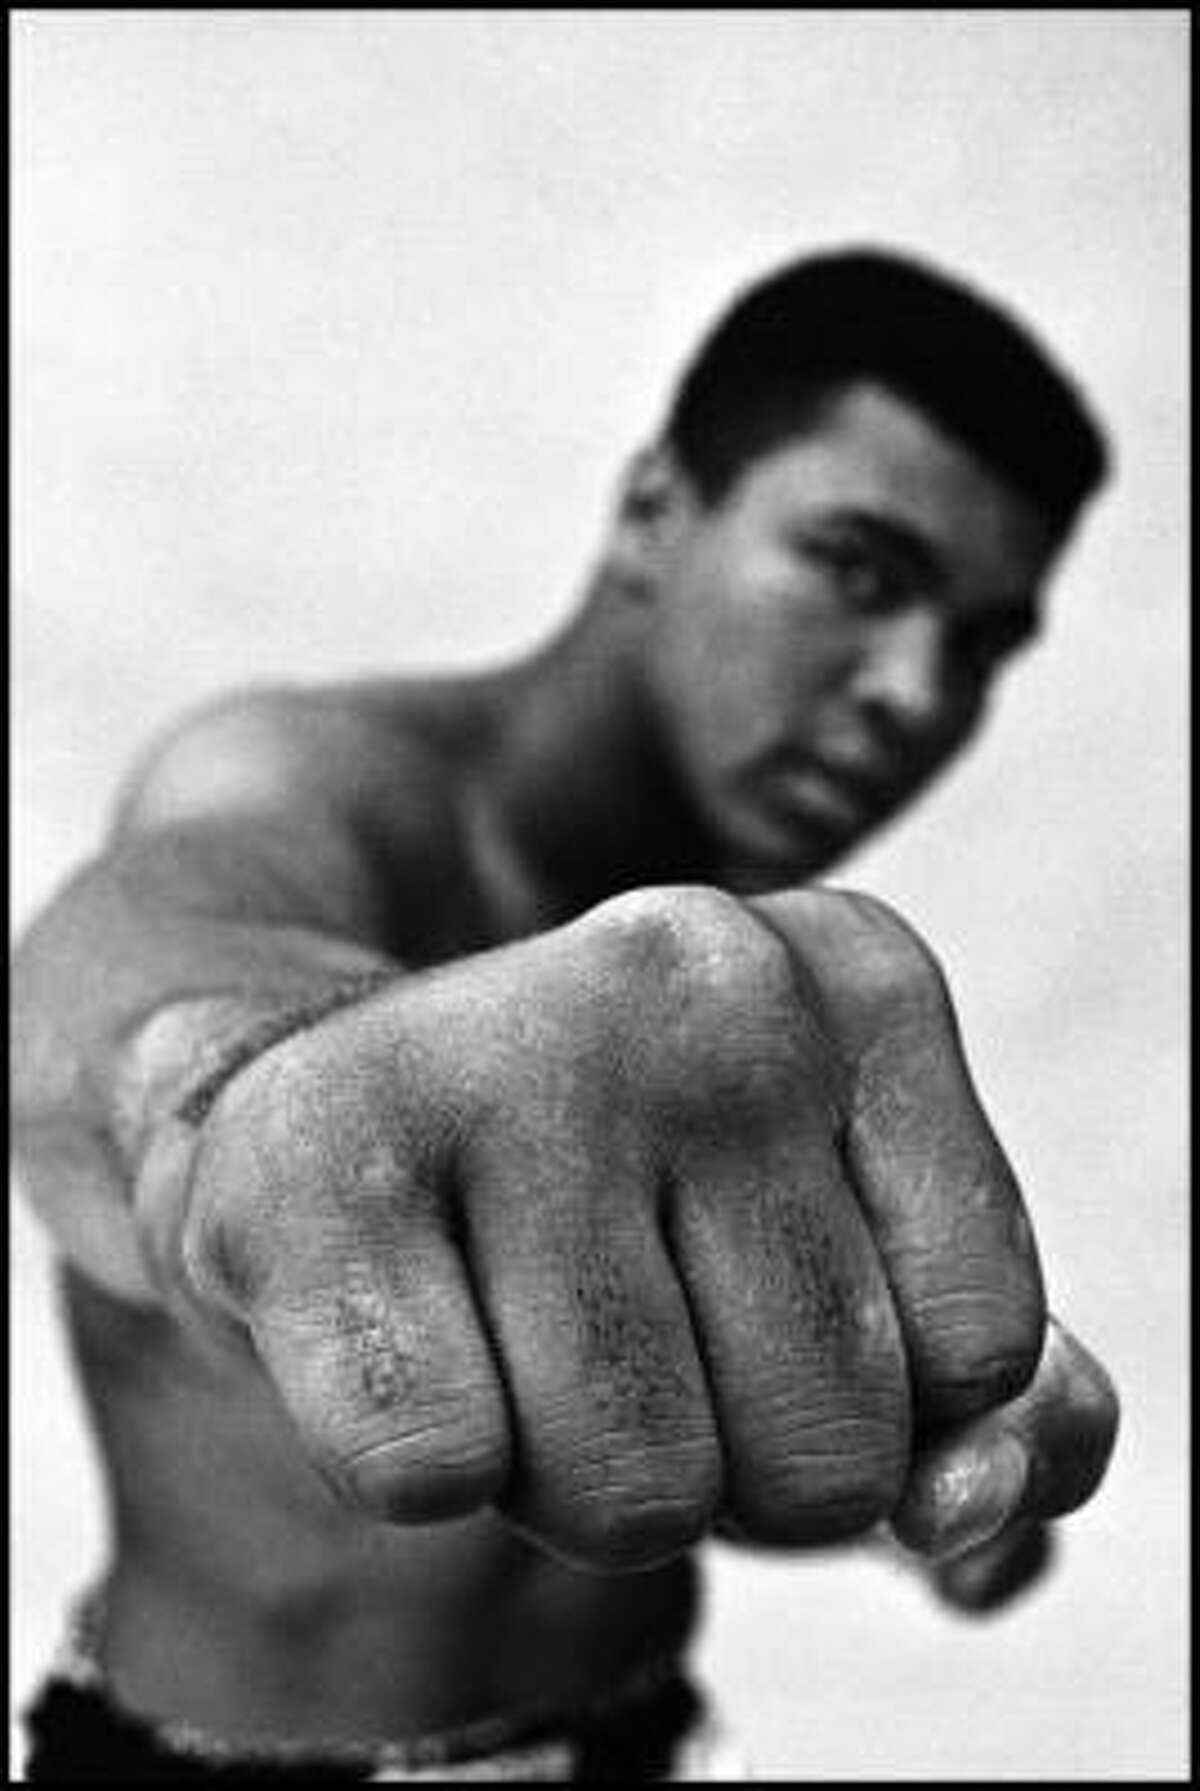 Muhammad Ali, boxing's world heavyweight champion showing off his right fist, Chicago, 1966.